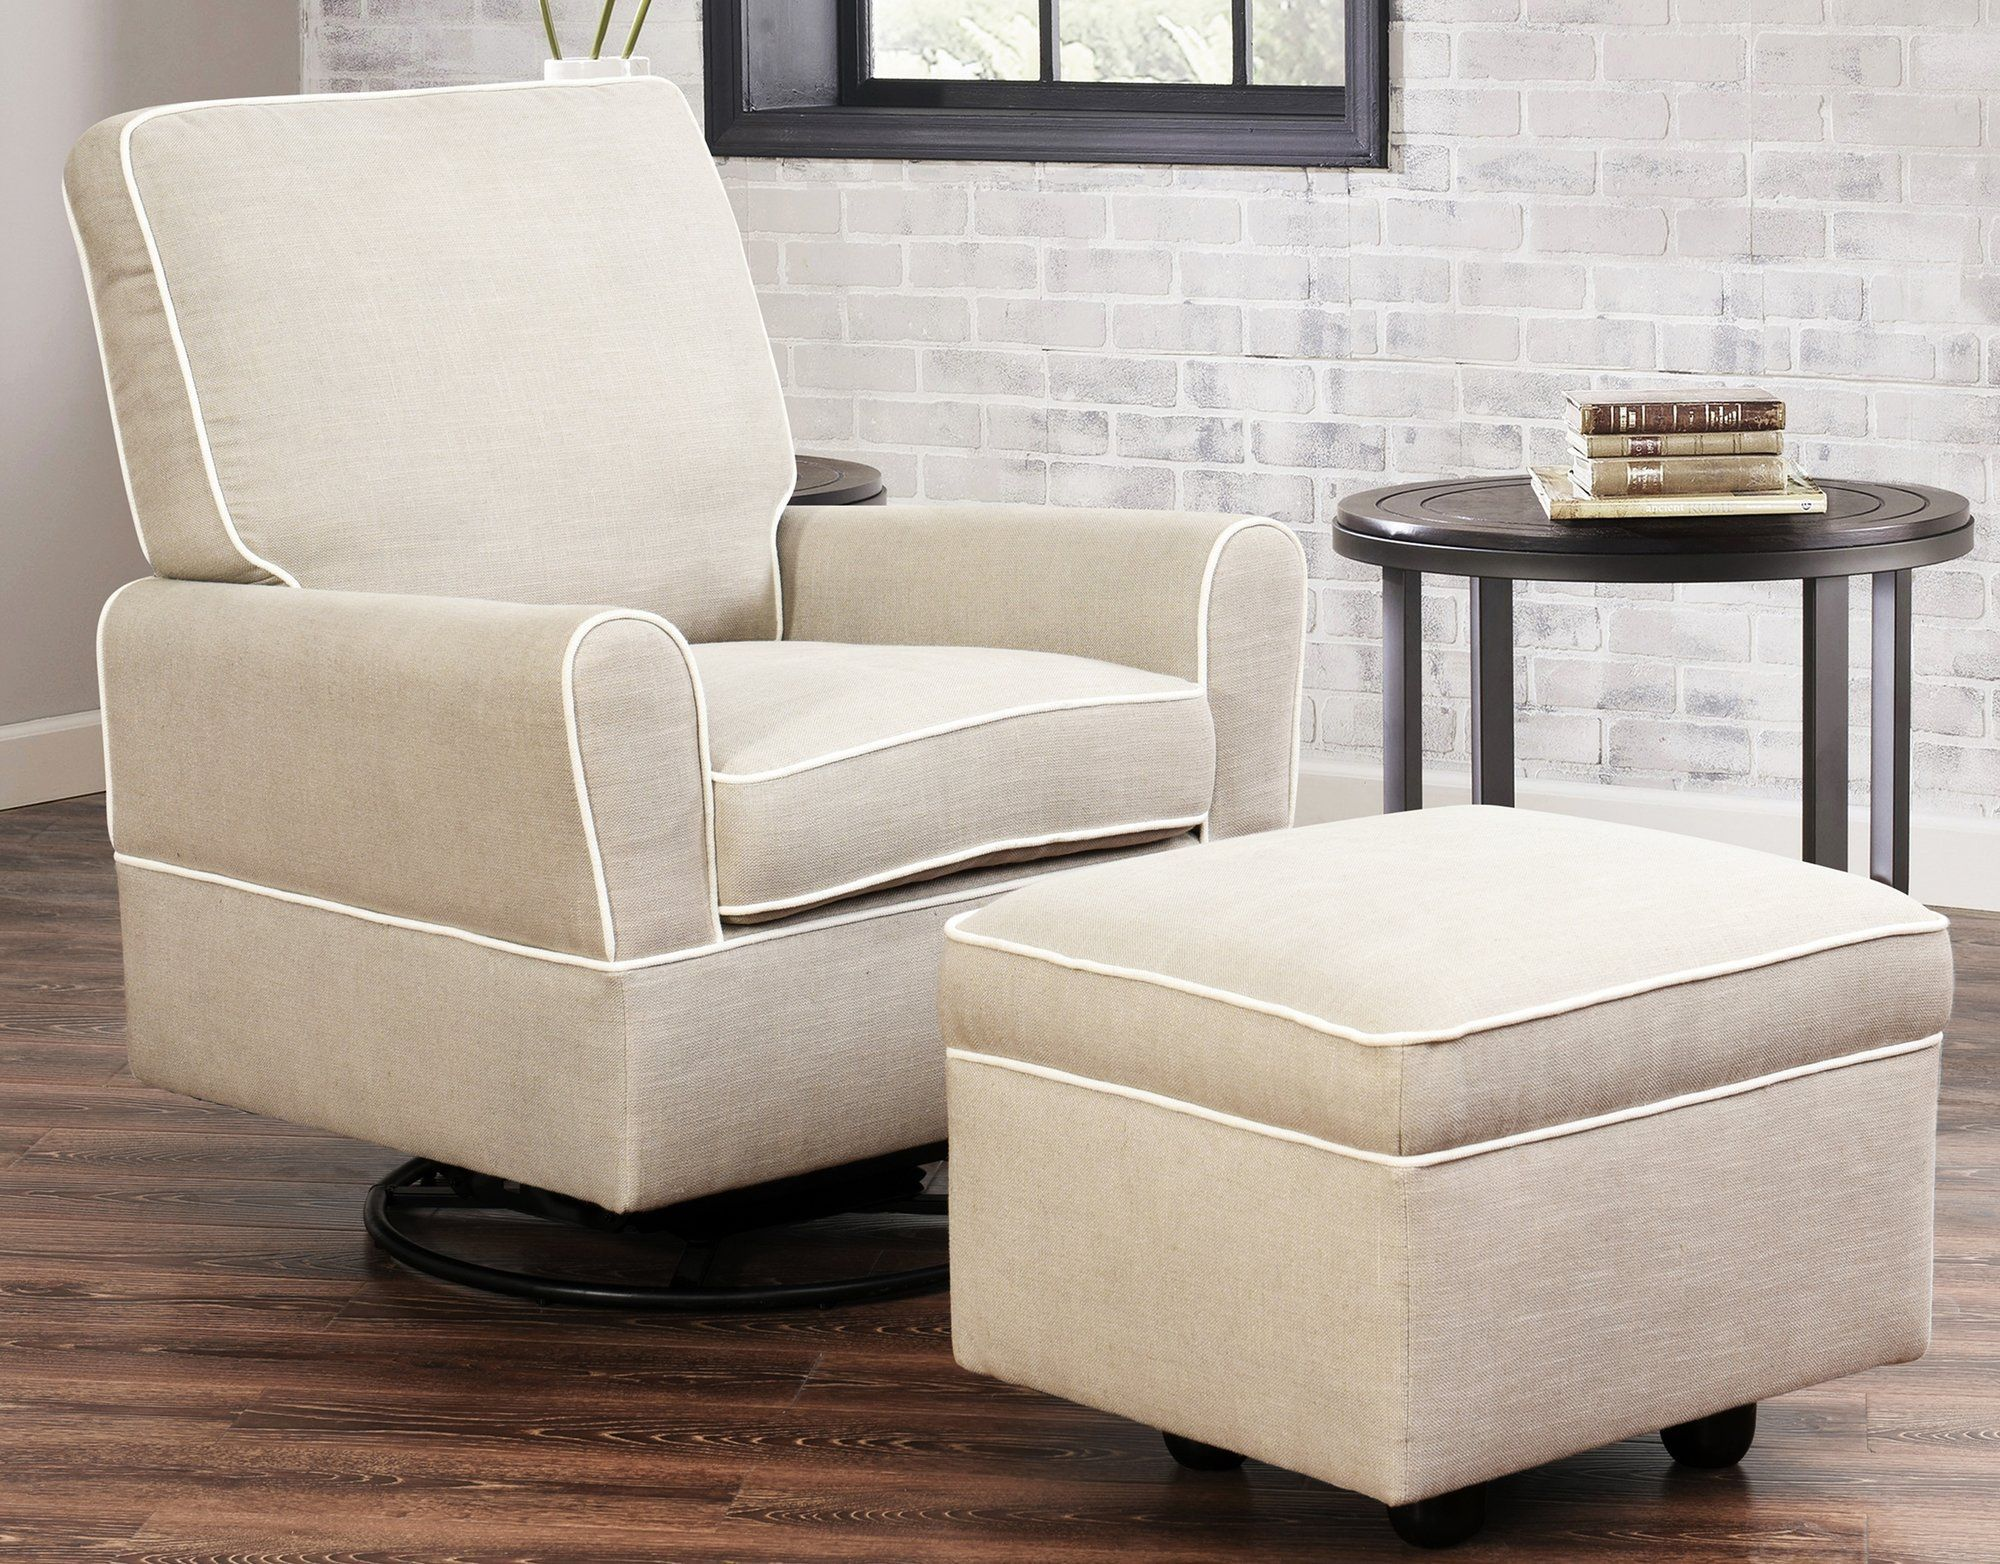 Shelbyville Swivel Glider Recliner and Ottoman | Kids Furniture ...